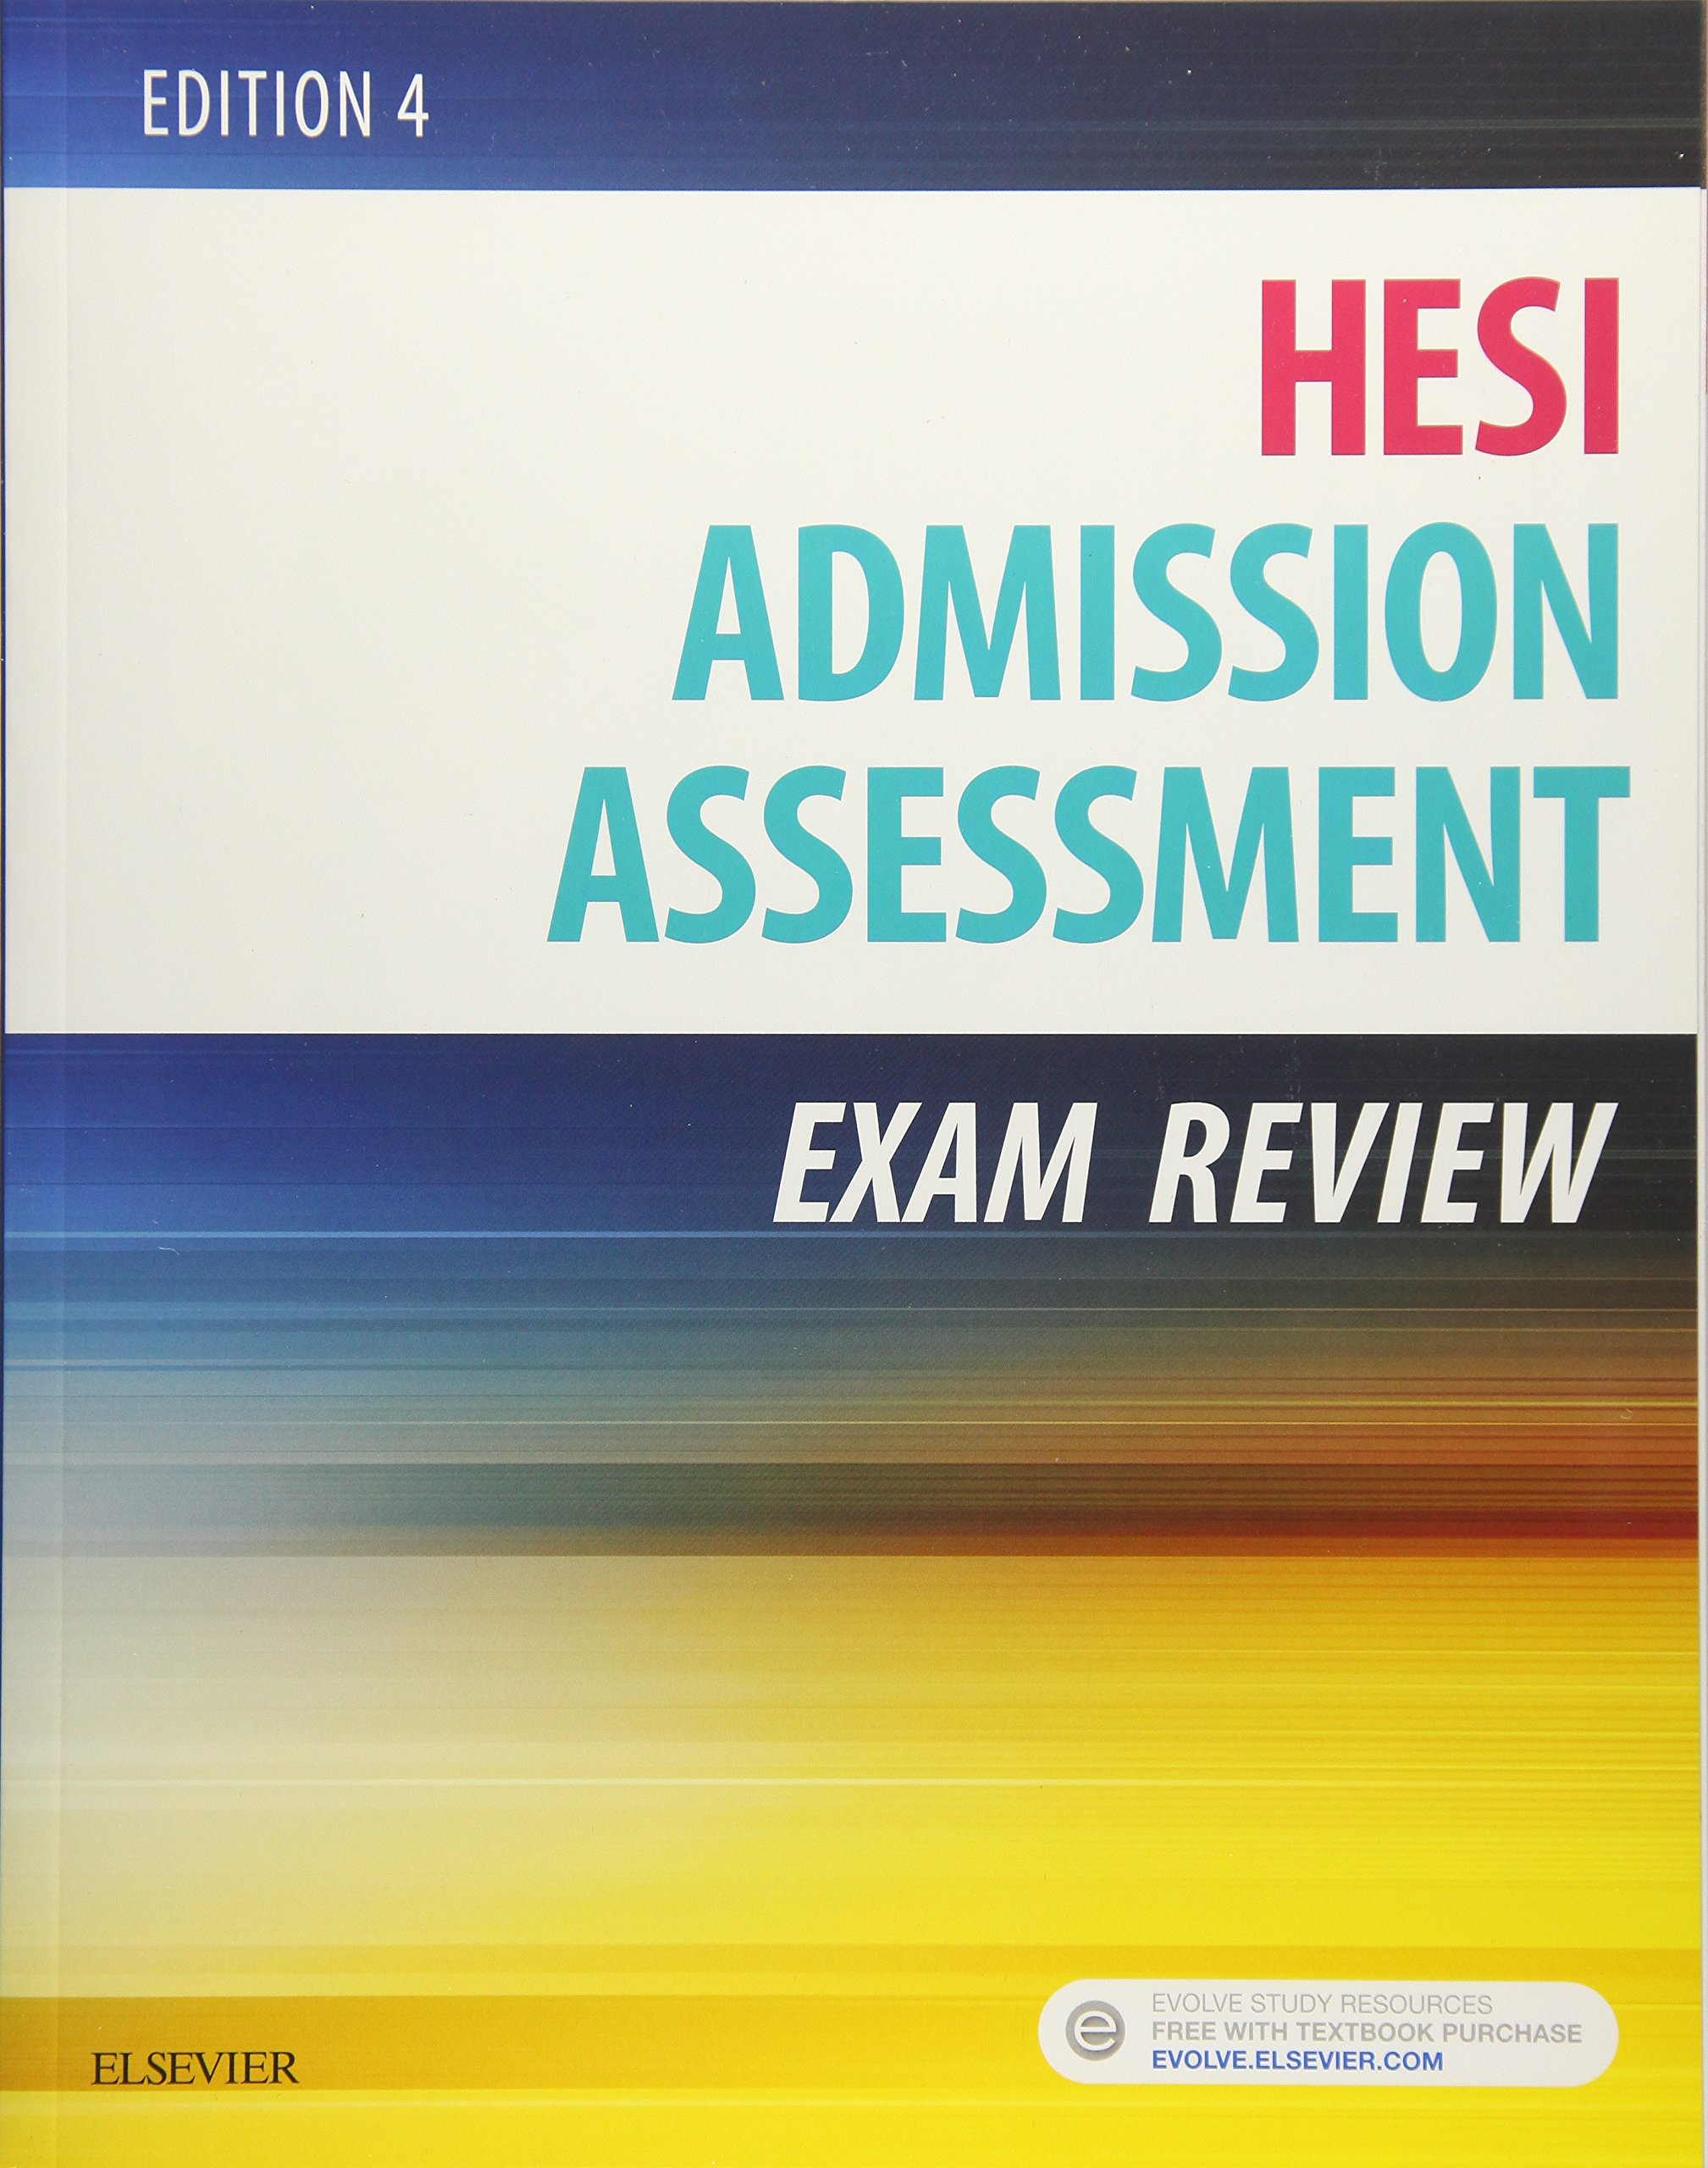 Admission Assessment Exam Review